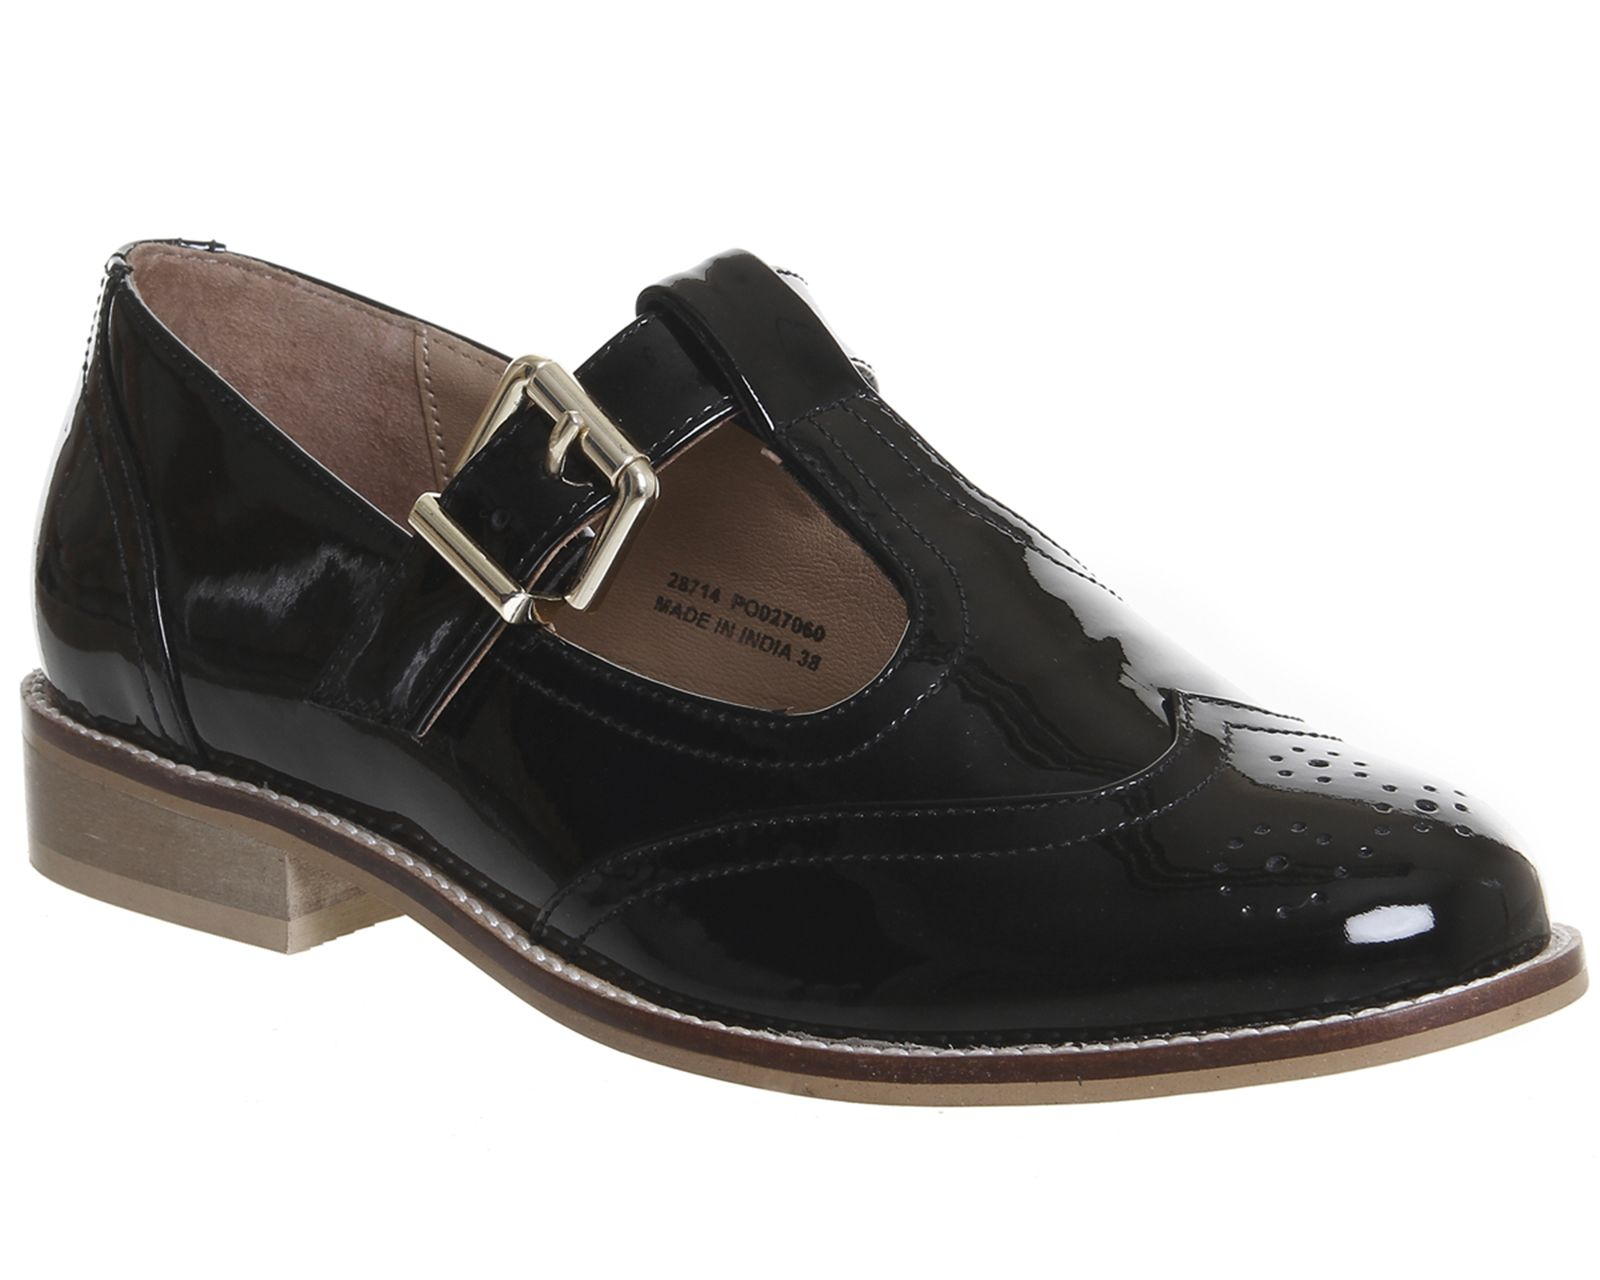 Office Patent Leather Mary Janes